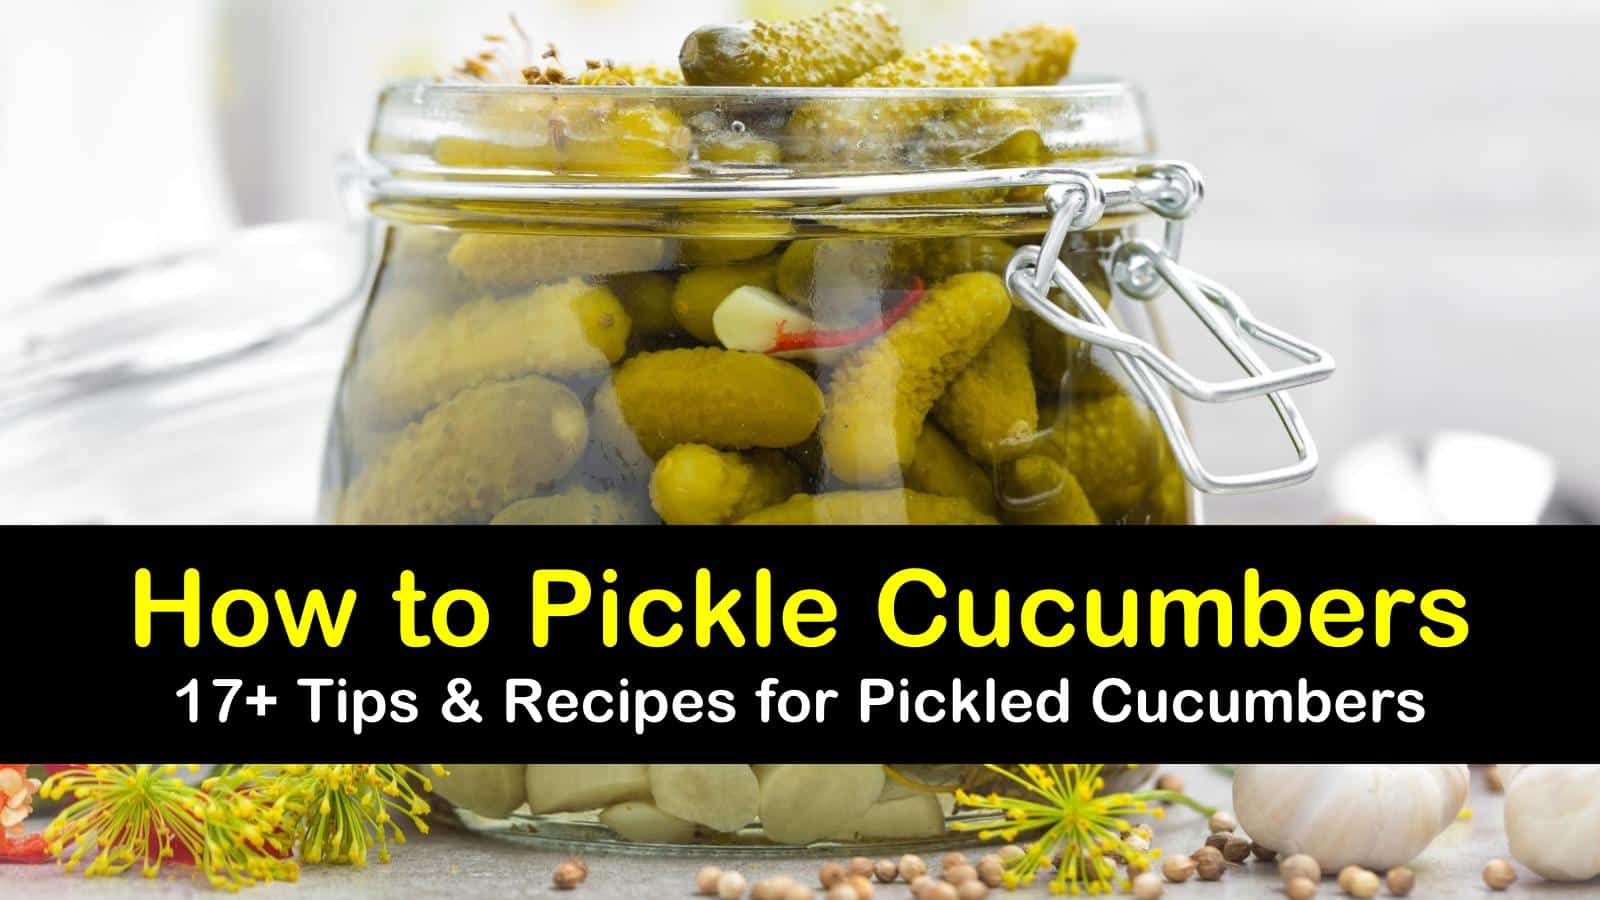 how to pickle cucumbers titleimg1